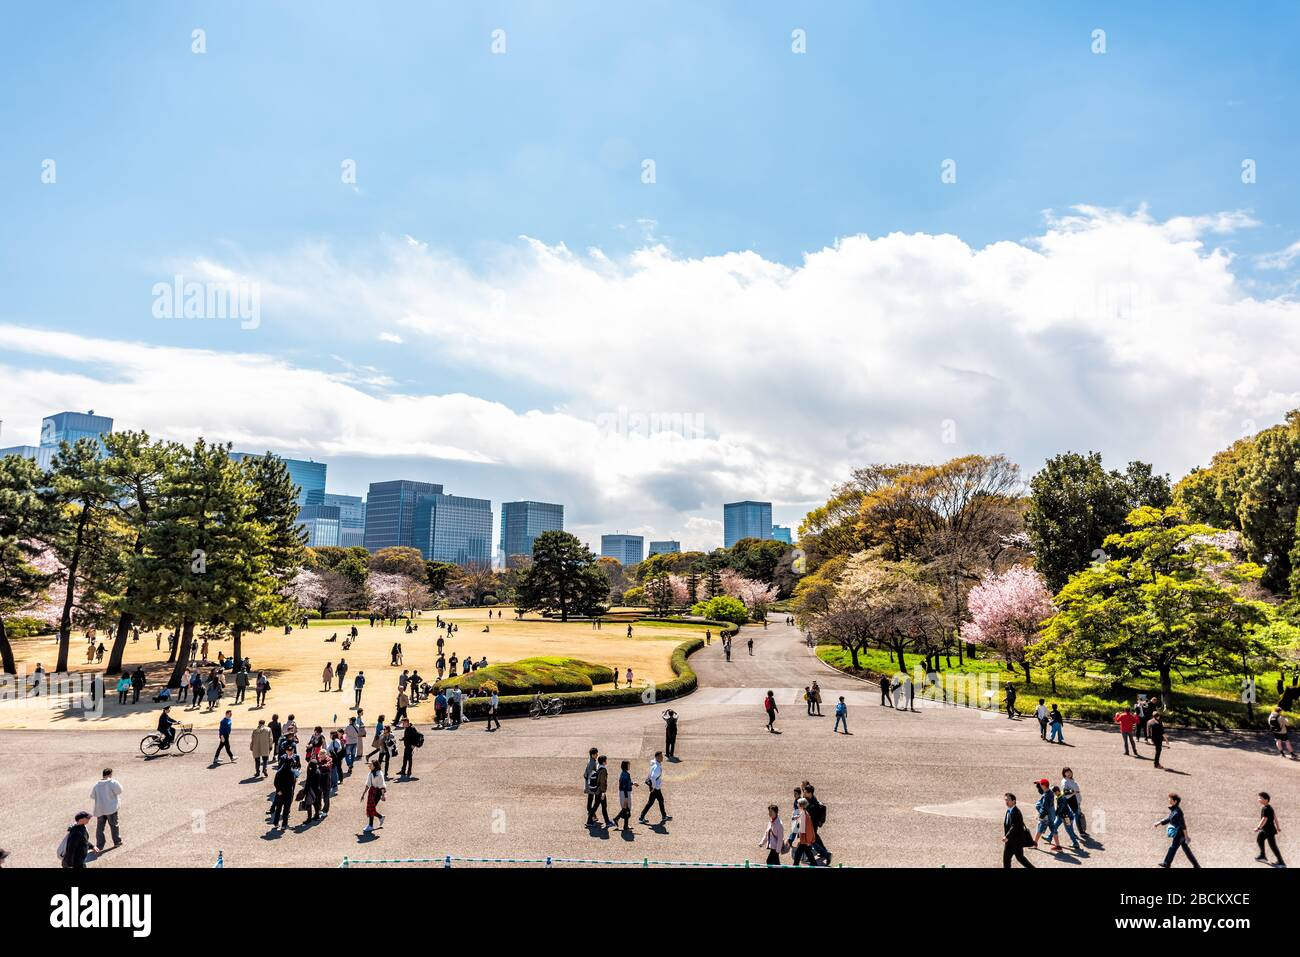 Tokyo, Japan - April 1, 2019: View from site of Edo Castle keep at Imperial palace national gardens park with cityscape skyline of modern skyscrapers Stock Photo